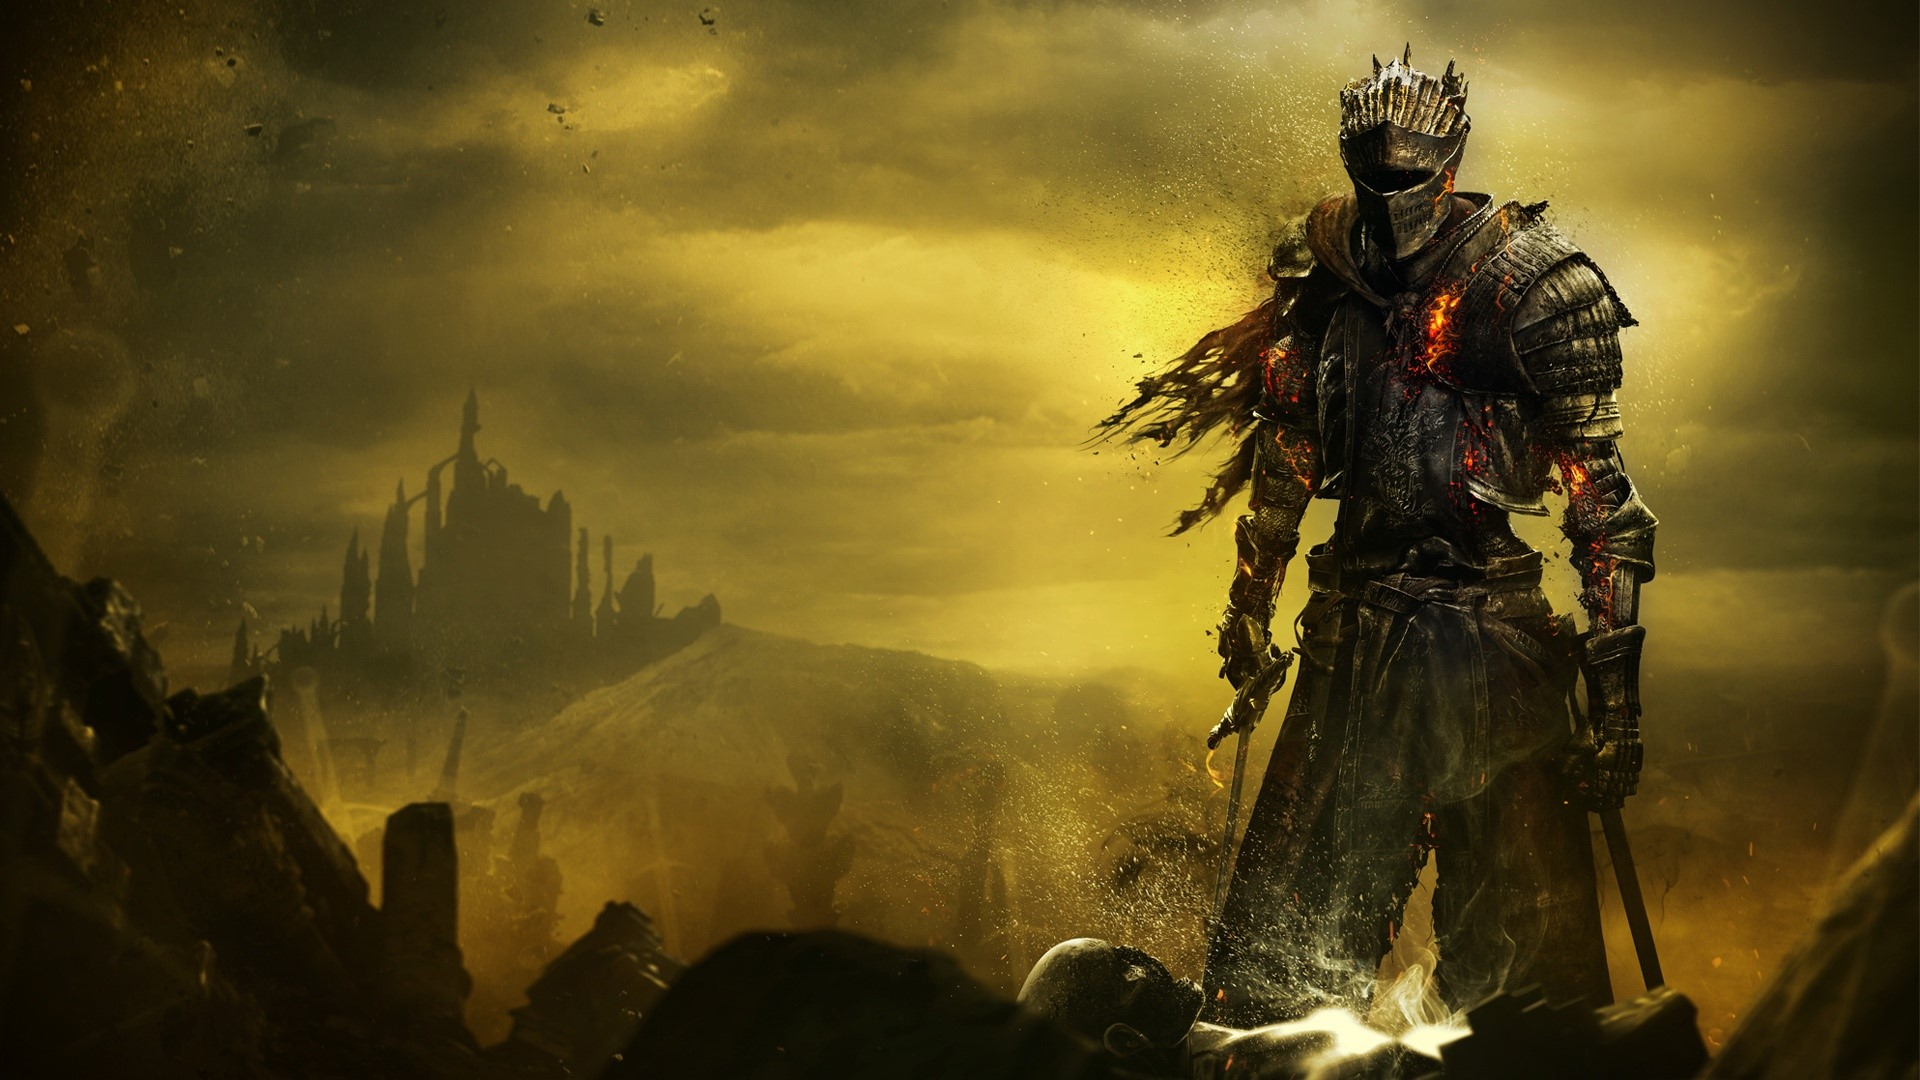 Wallpaper Soul of cinder de Dark Souls 3 Images